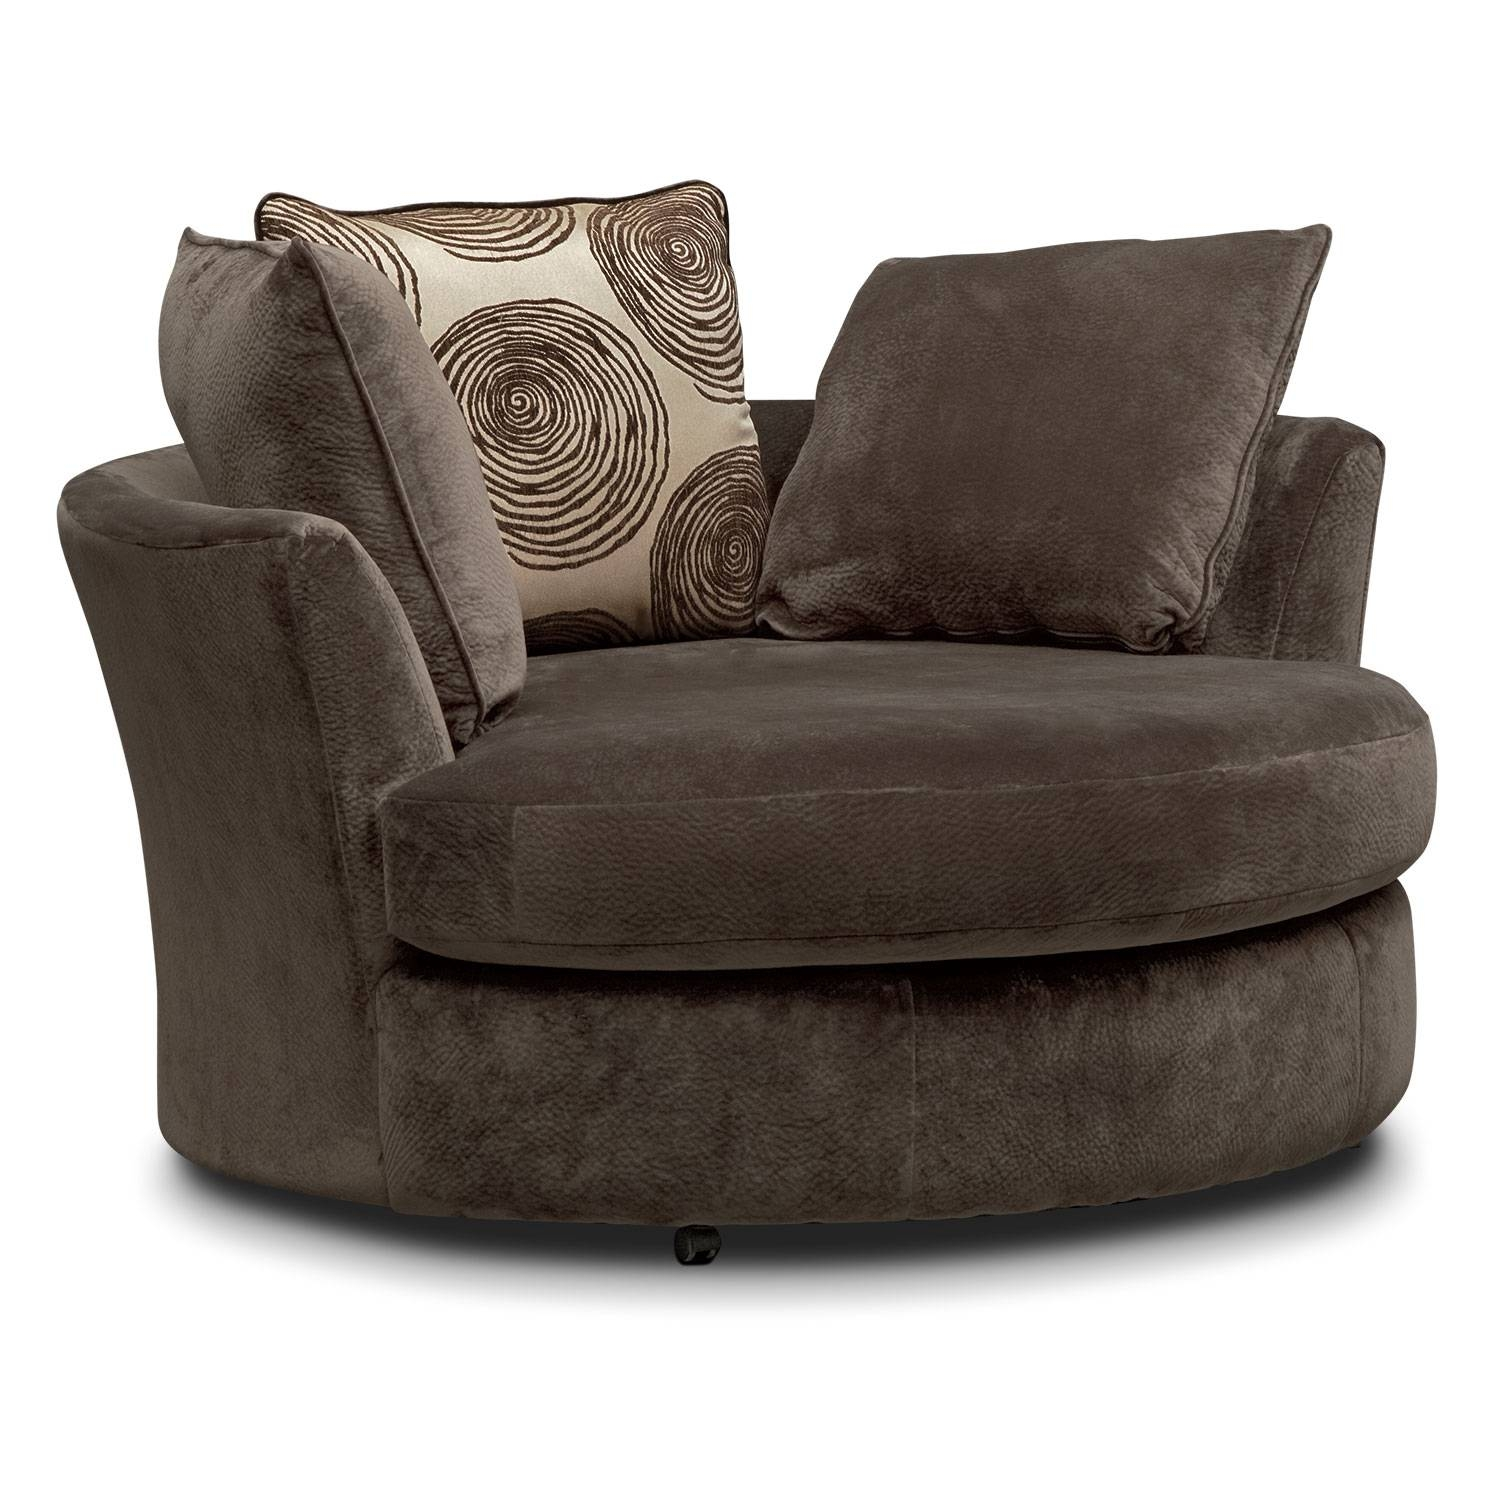 Cordelle Sofa And Swivel Chair Set - Chocolate | Value City Furniture with regard to Sofa With Swivel Chair (Image 7 of 30)